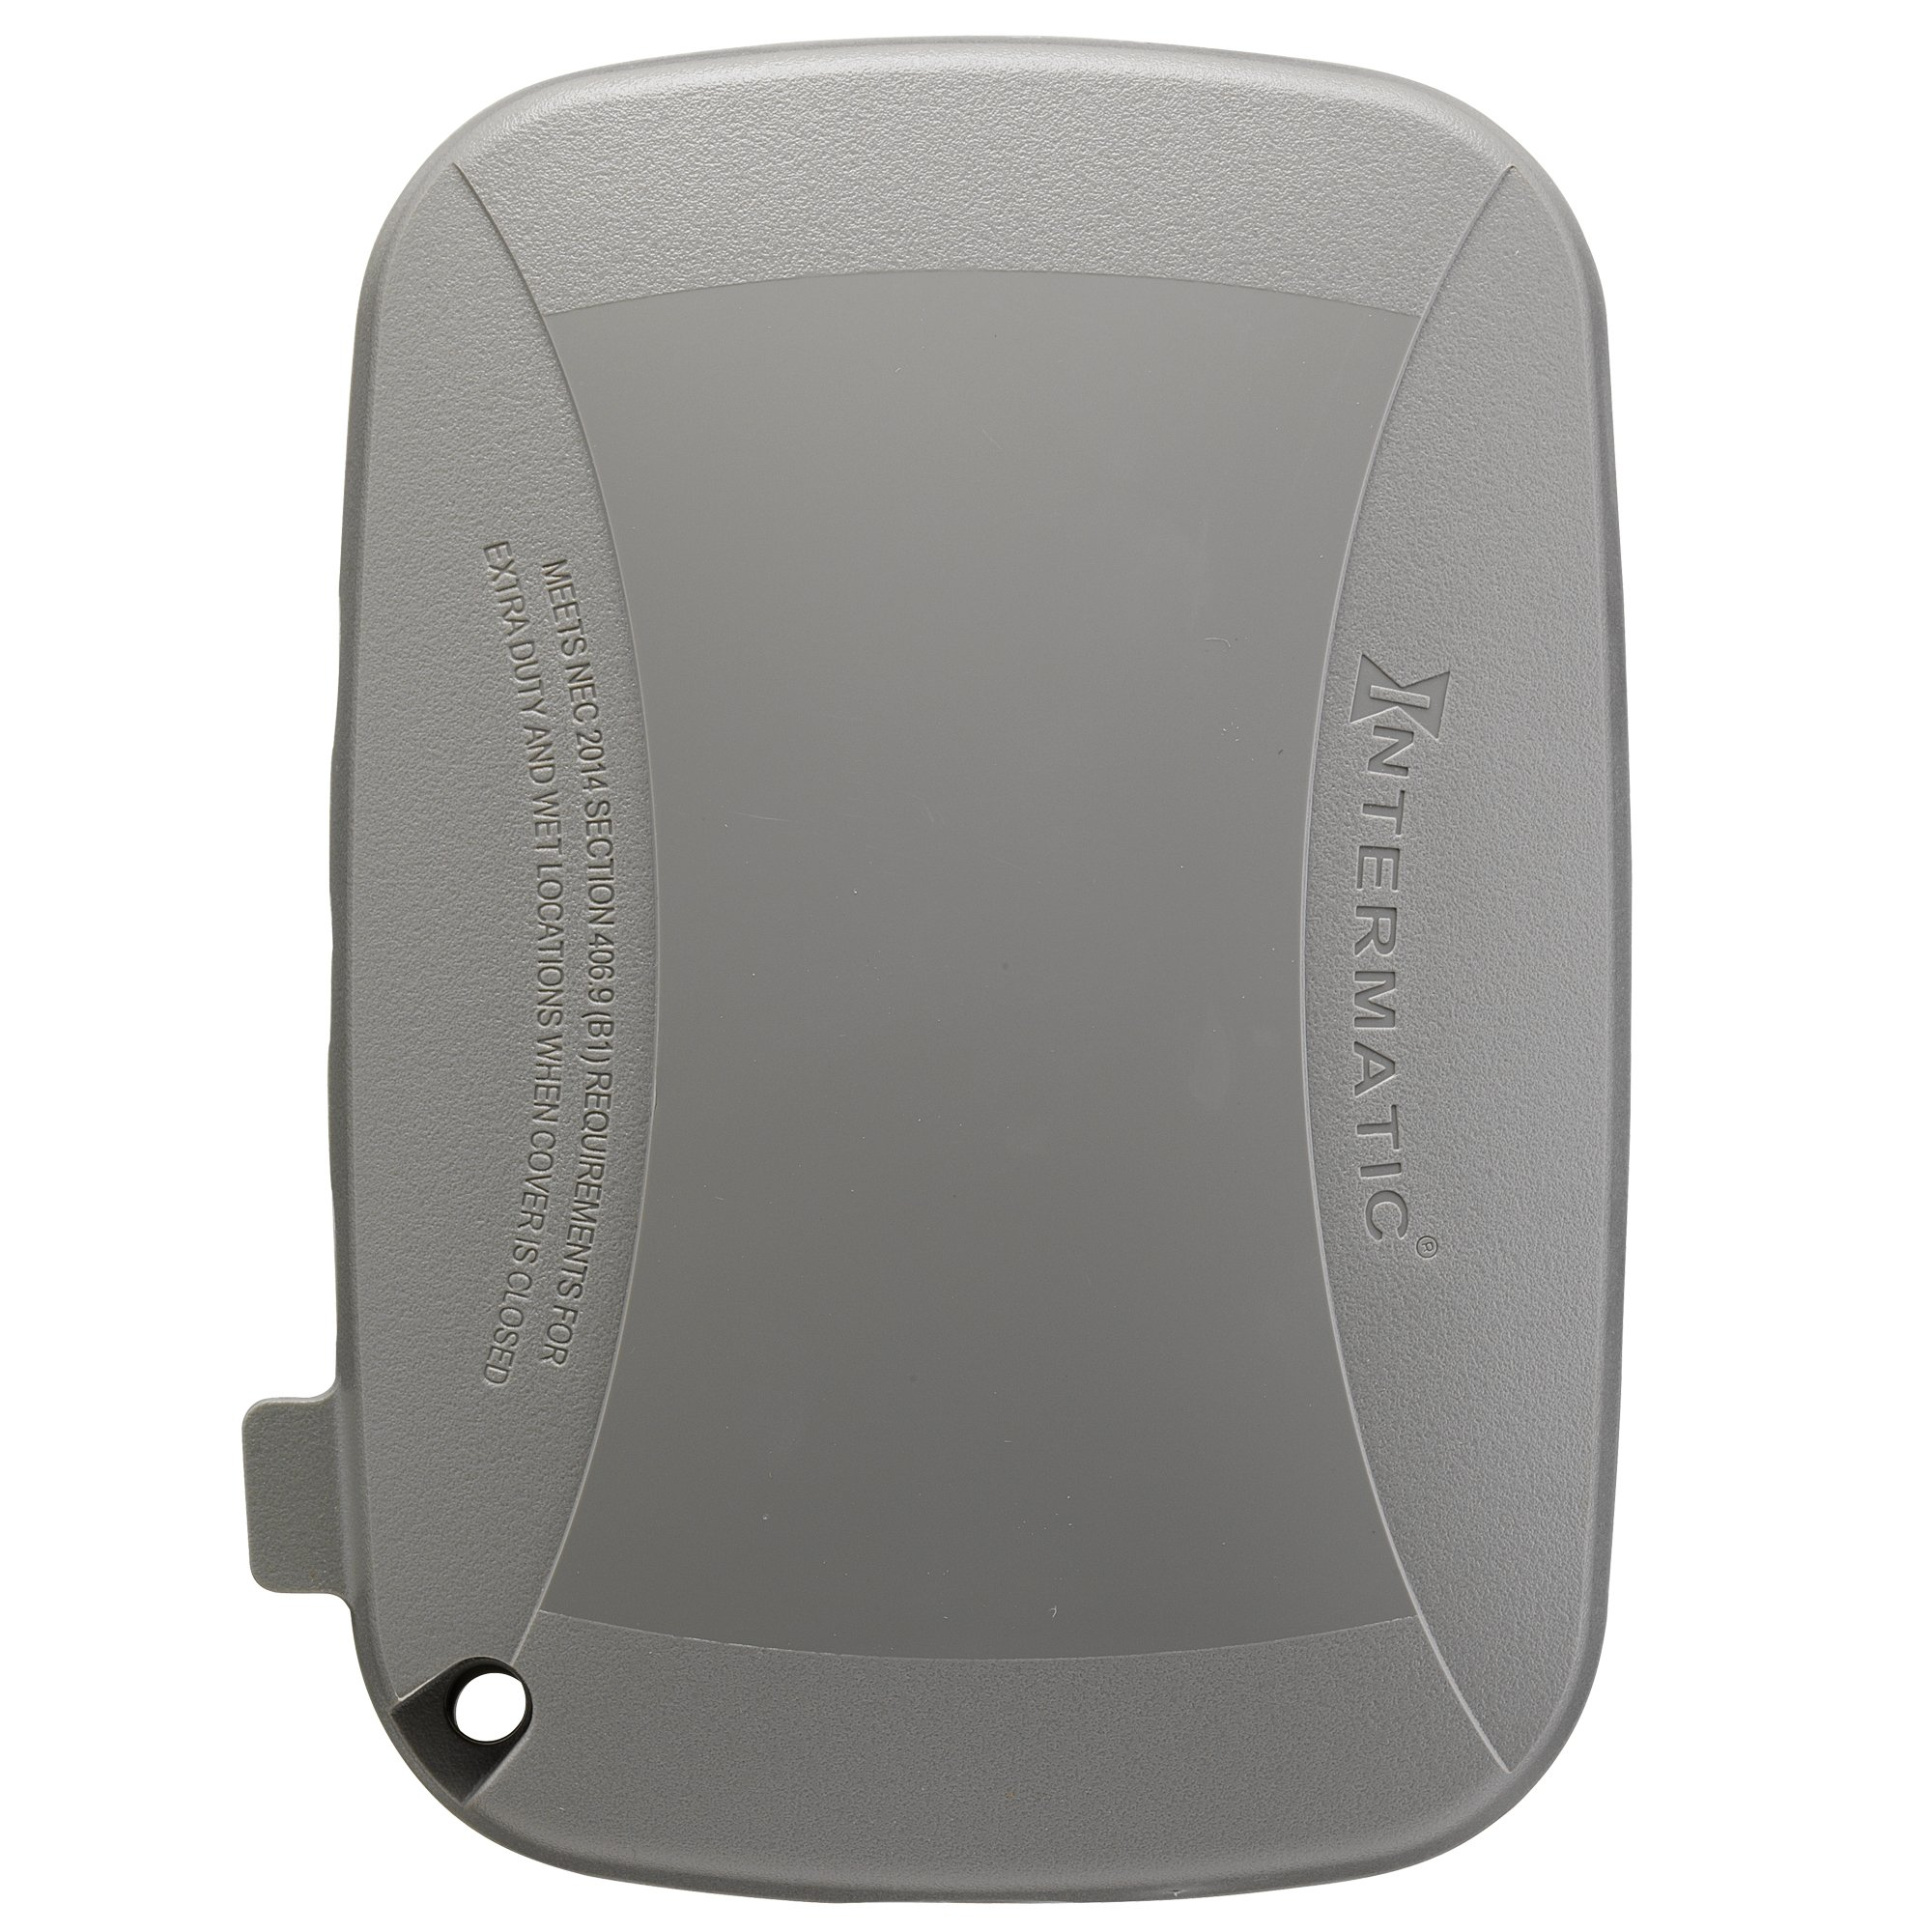 Intermatic WP5110G Extra Duty Plastic Weatherproof Cover 3.625-Inch Single Gang, Grey by Intermatic